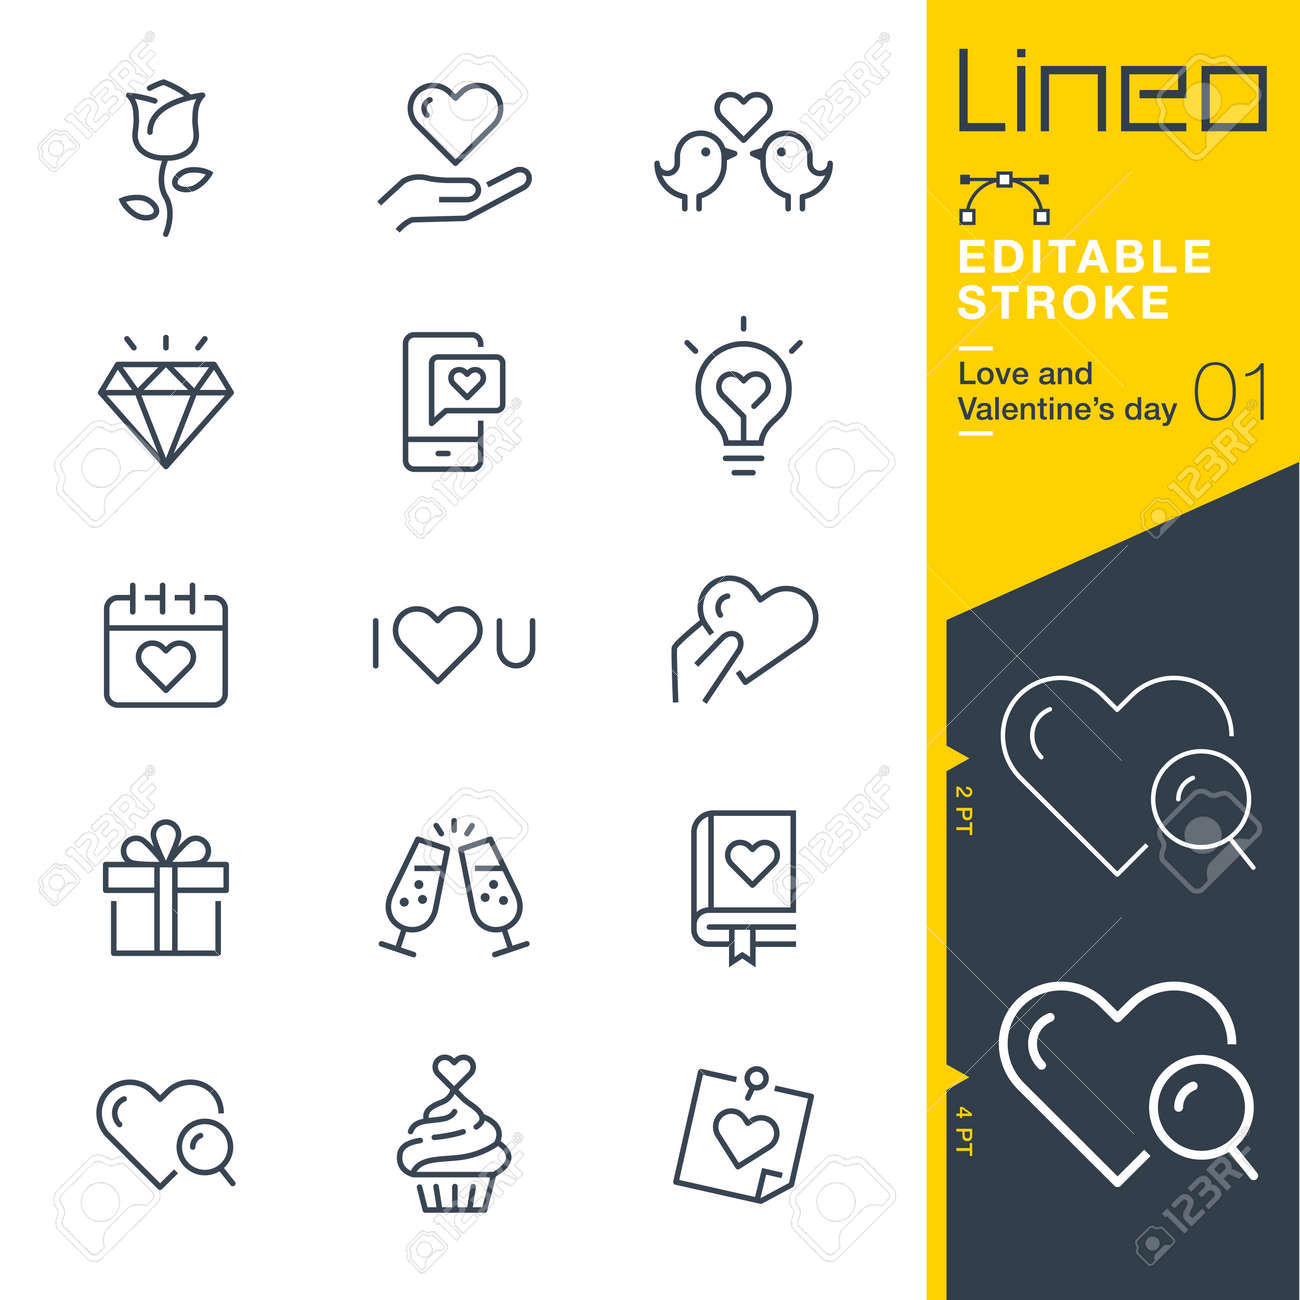 Line Editable Stroke - Love and Valentines day icon - 83785839